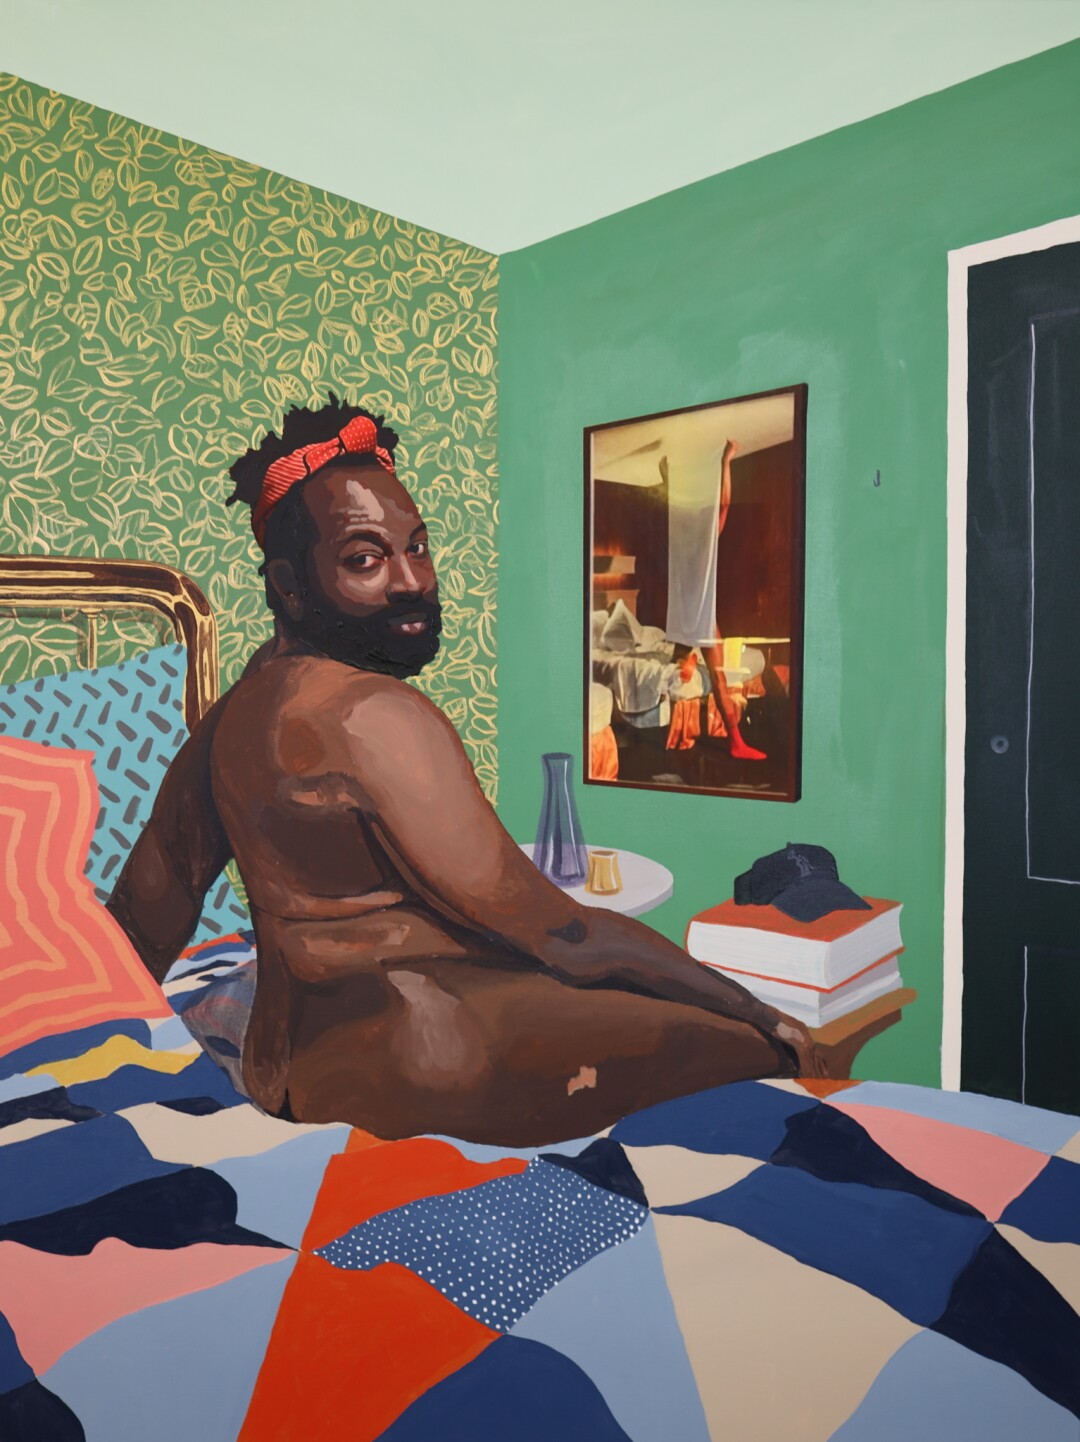 Corey Pemberton, Maurice, 2021. Acrylic, inkjet prints, and graphite on canvas. 36 in. x 48 in.